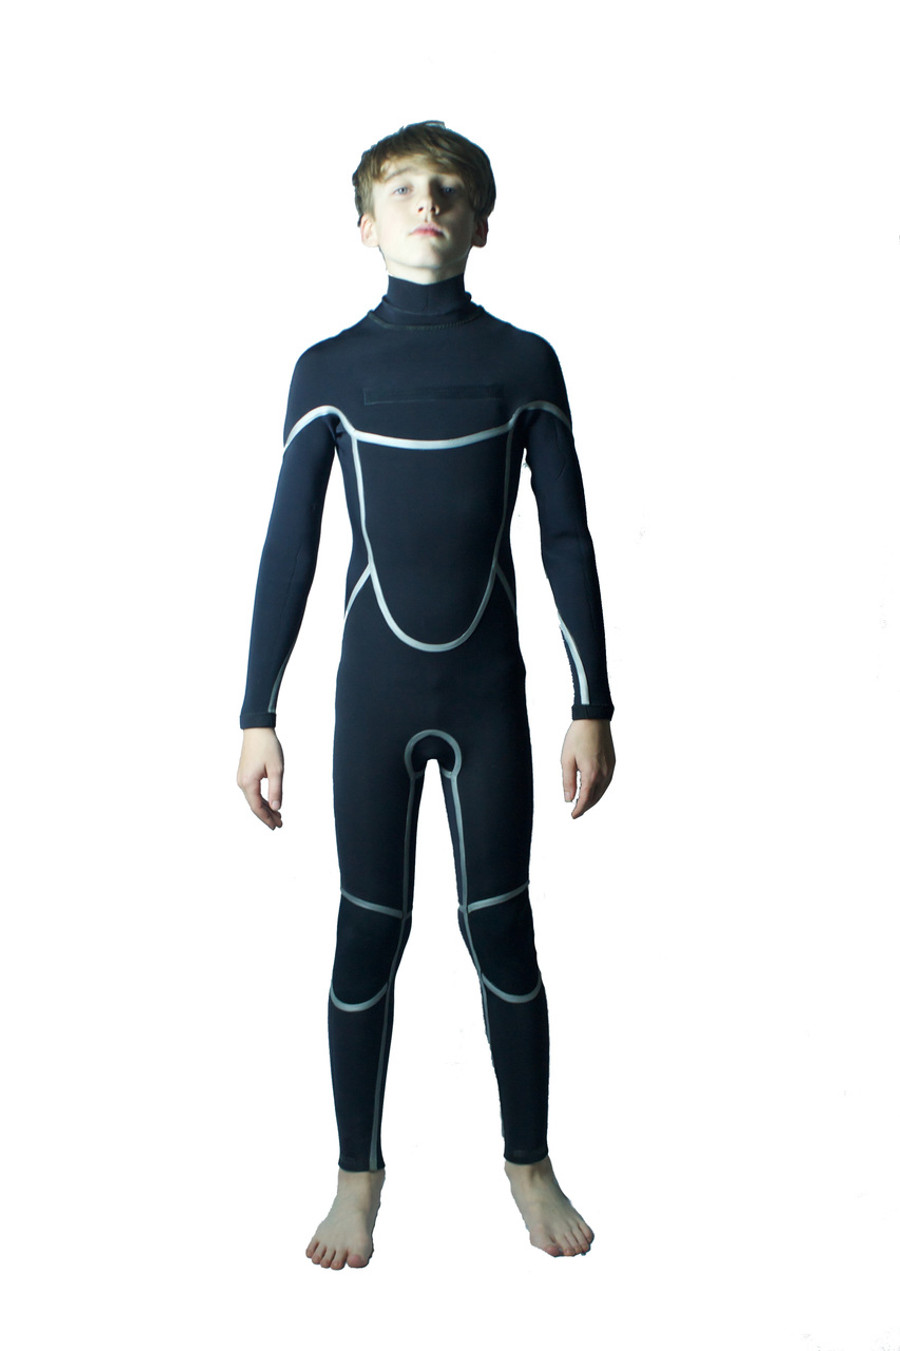 Inside out - Childrens hi-performance wetsuit.